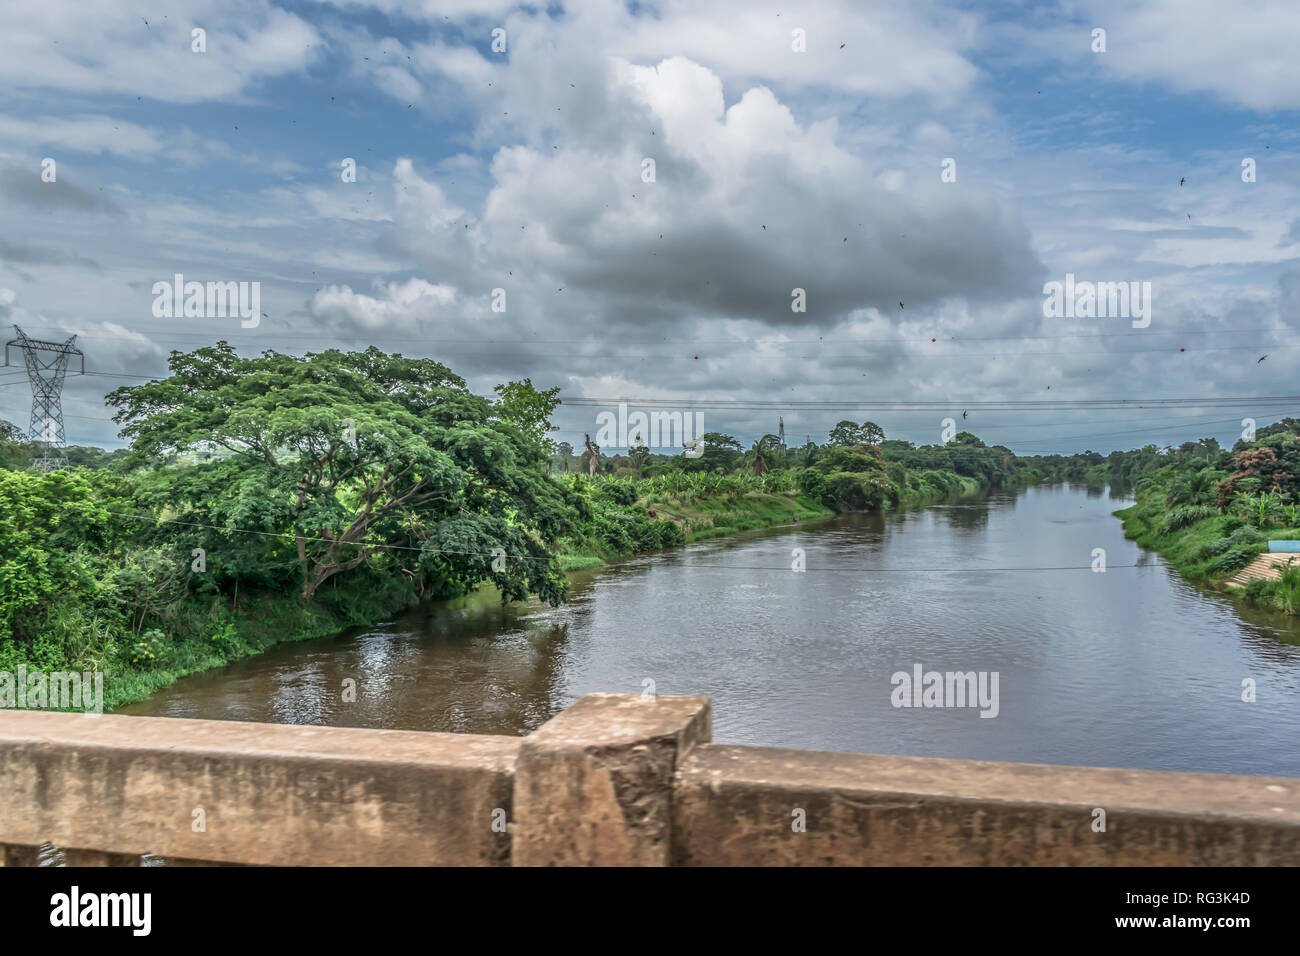 View of the Kwanza (Cuanza) river, tropical vegetation on banks, electric power lines, cloudy sky as background, in Angola - Stock Image